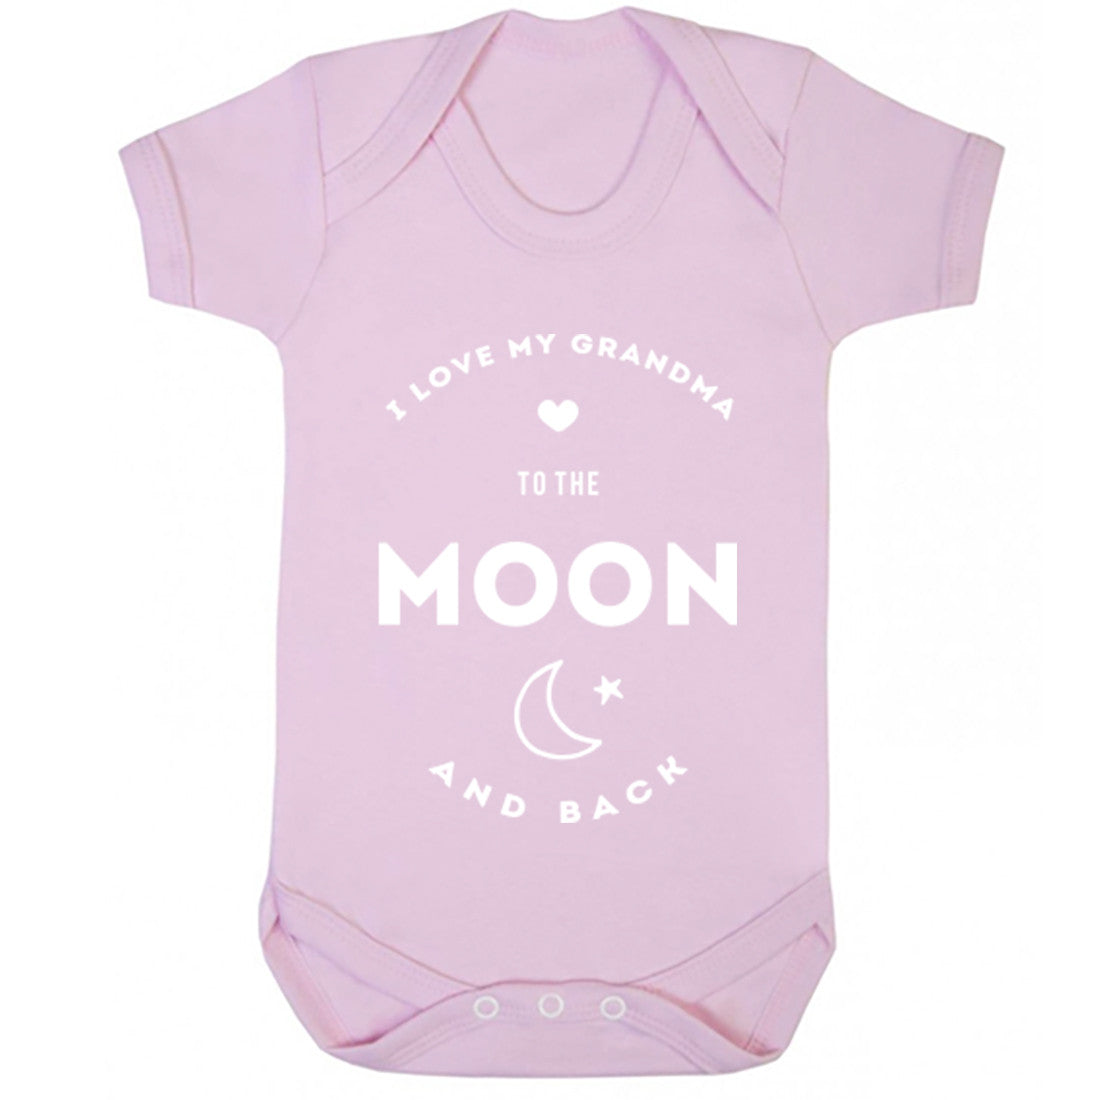 I Love My Grandma To The Moon And Back Baby Vest K0399